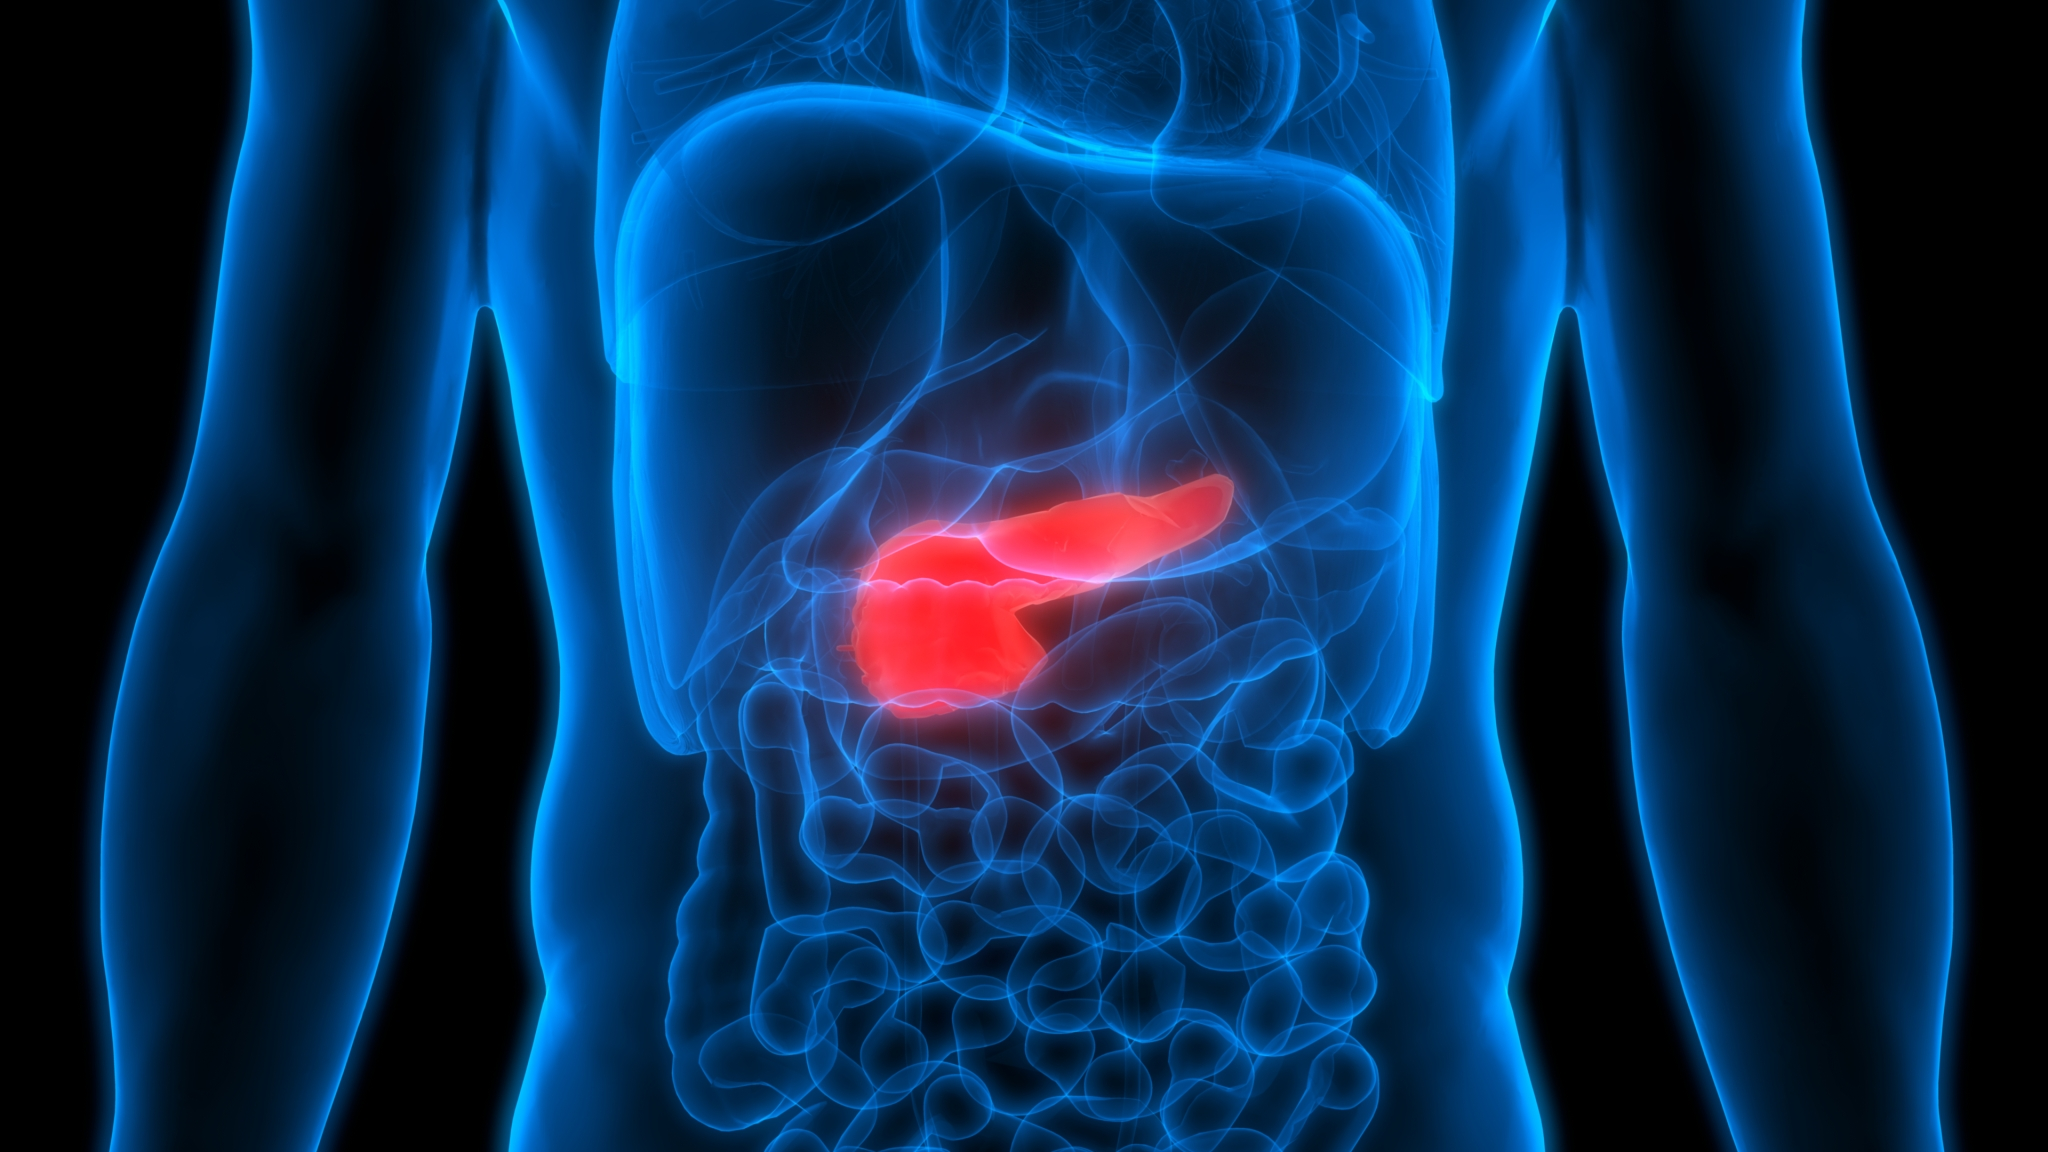 World Pancreatic Cancer Day: Know Why It's The Toughest Cancer